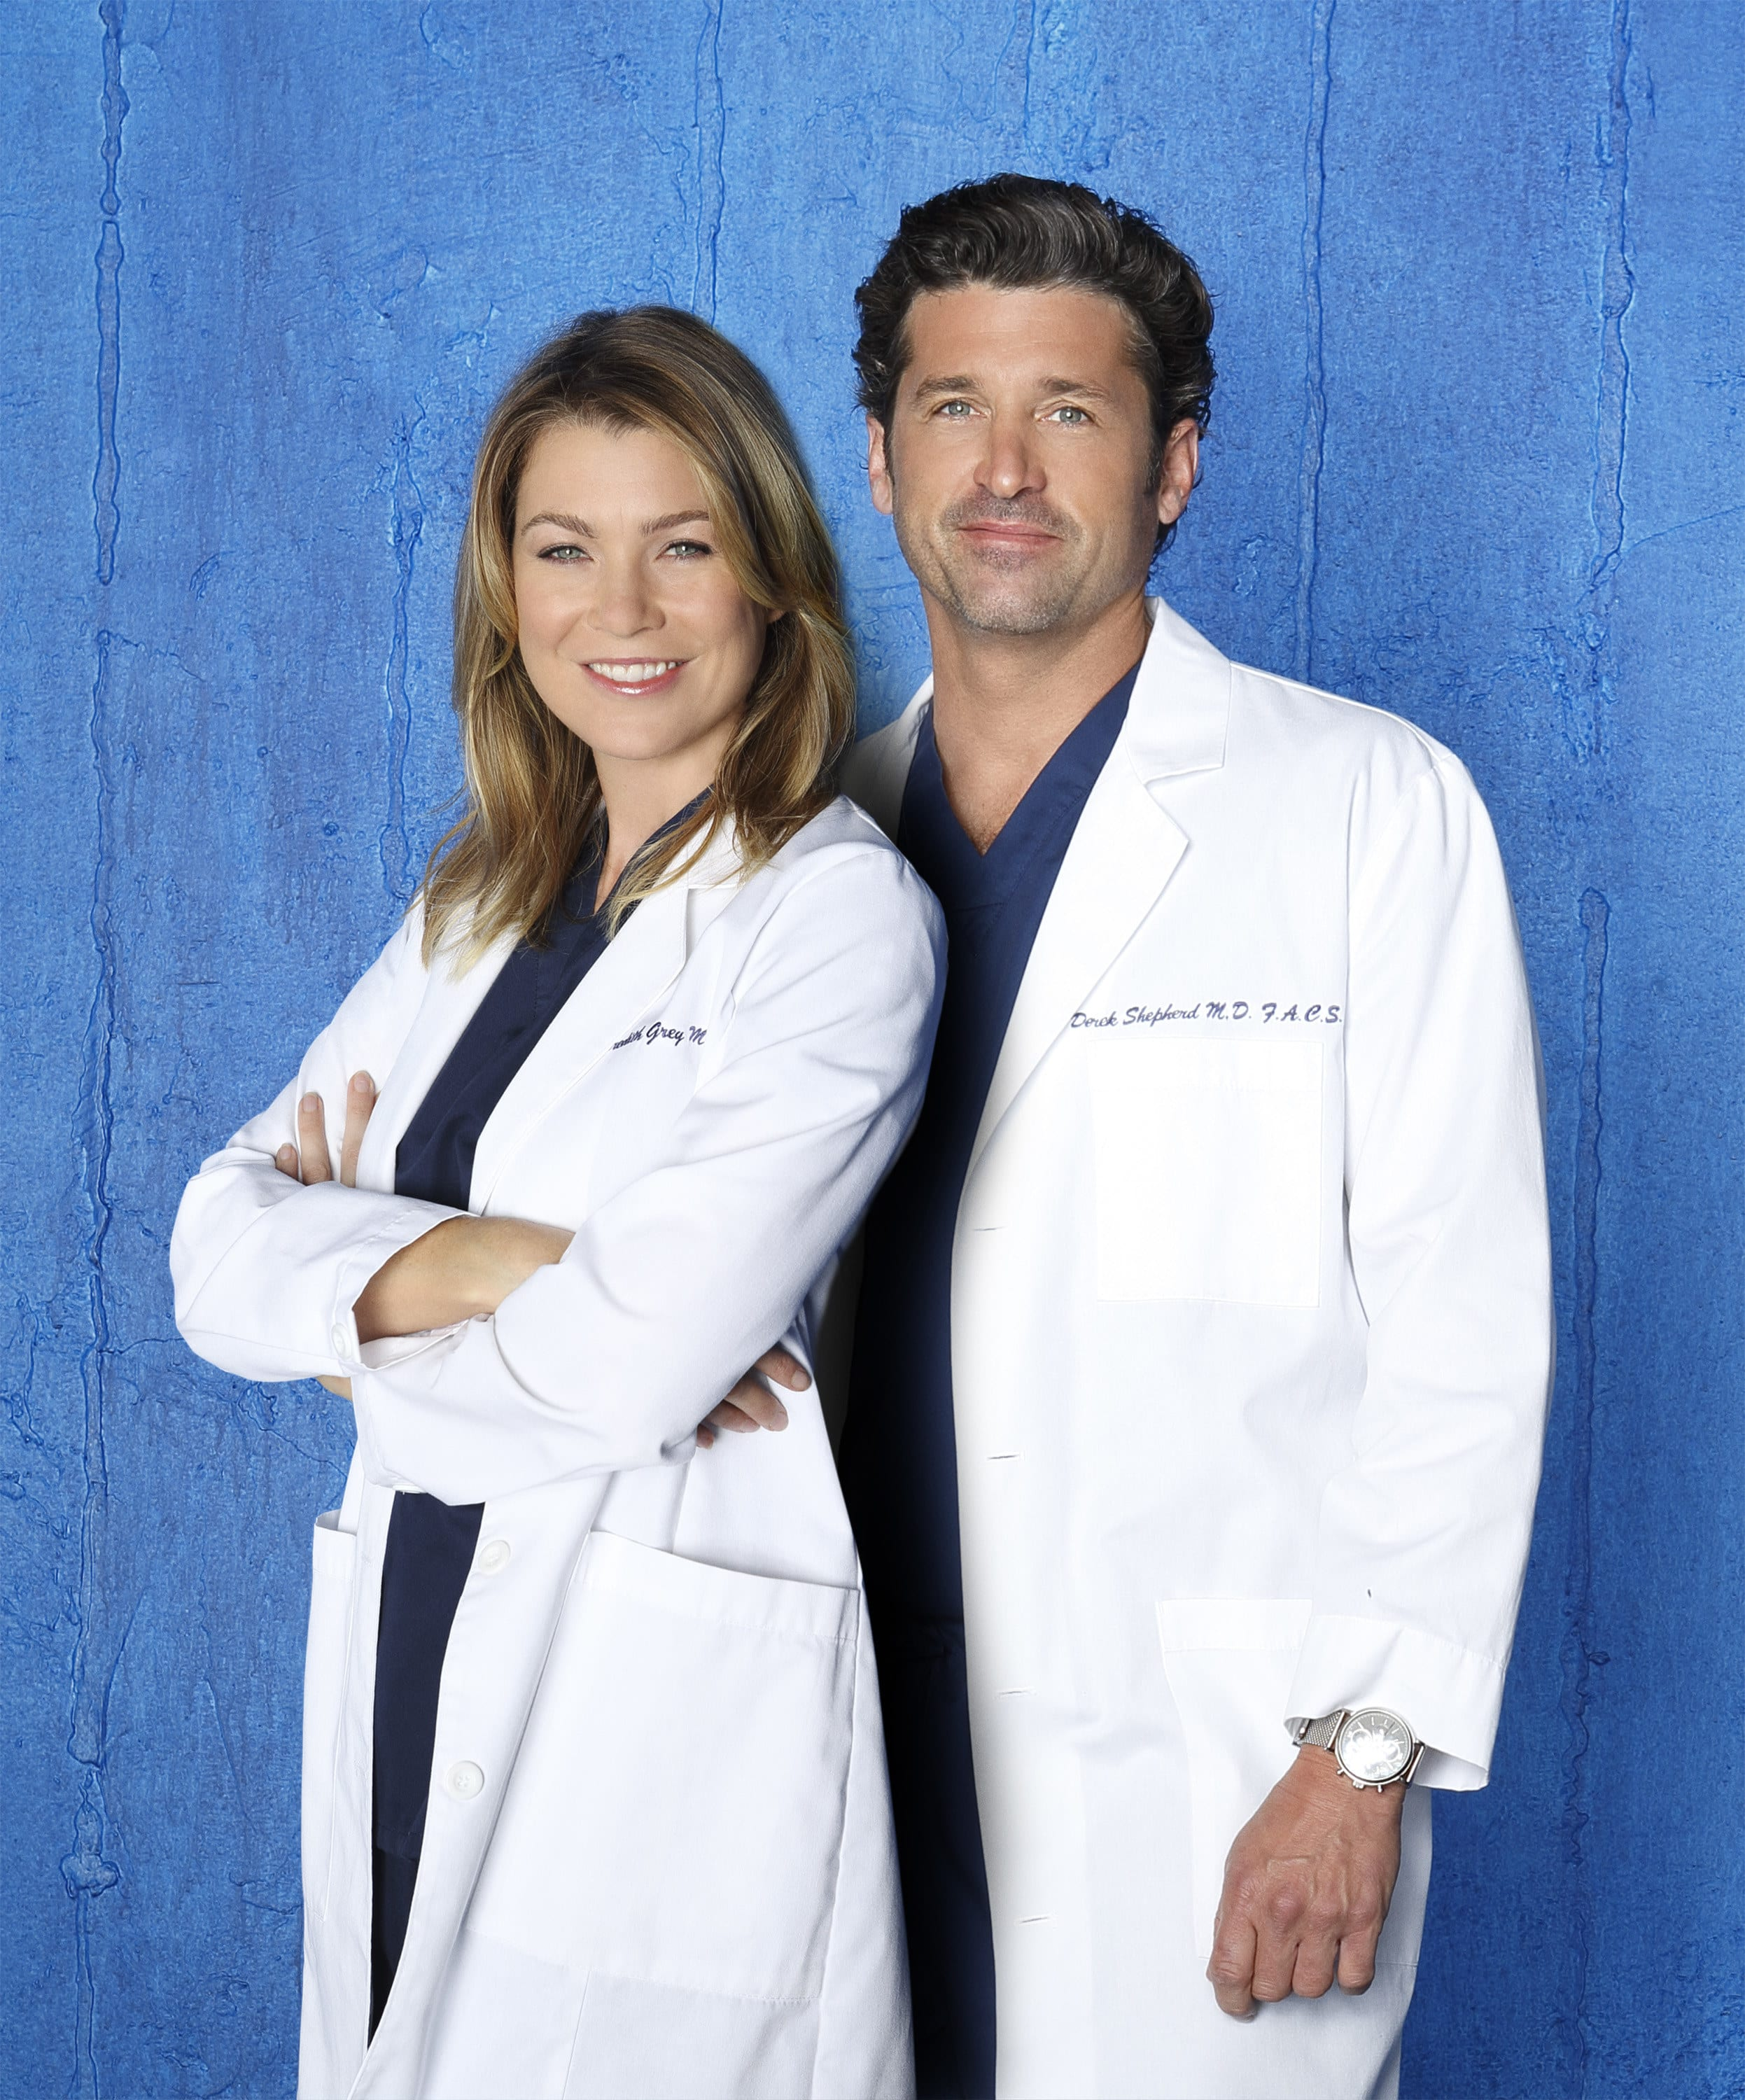 Ellen Pompeo crosses her arms with her back to Patrick Dempsey in matching lab coats